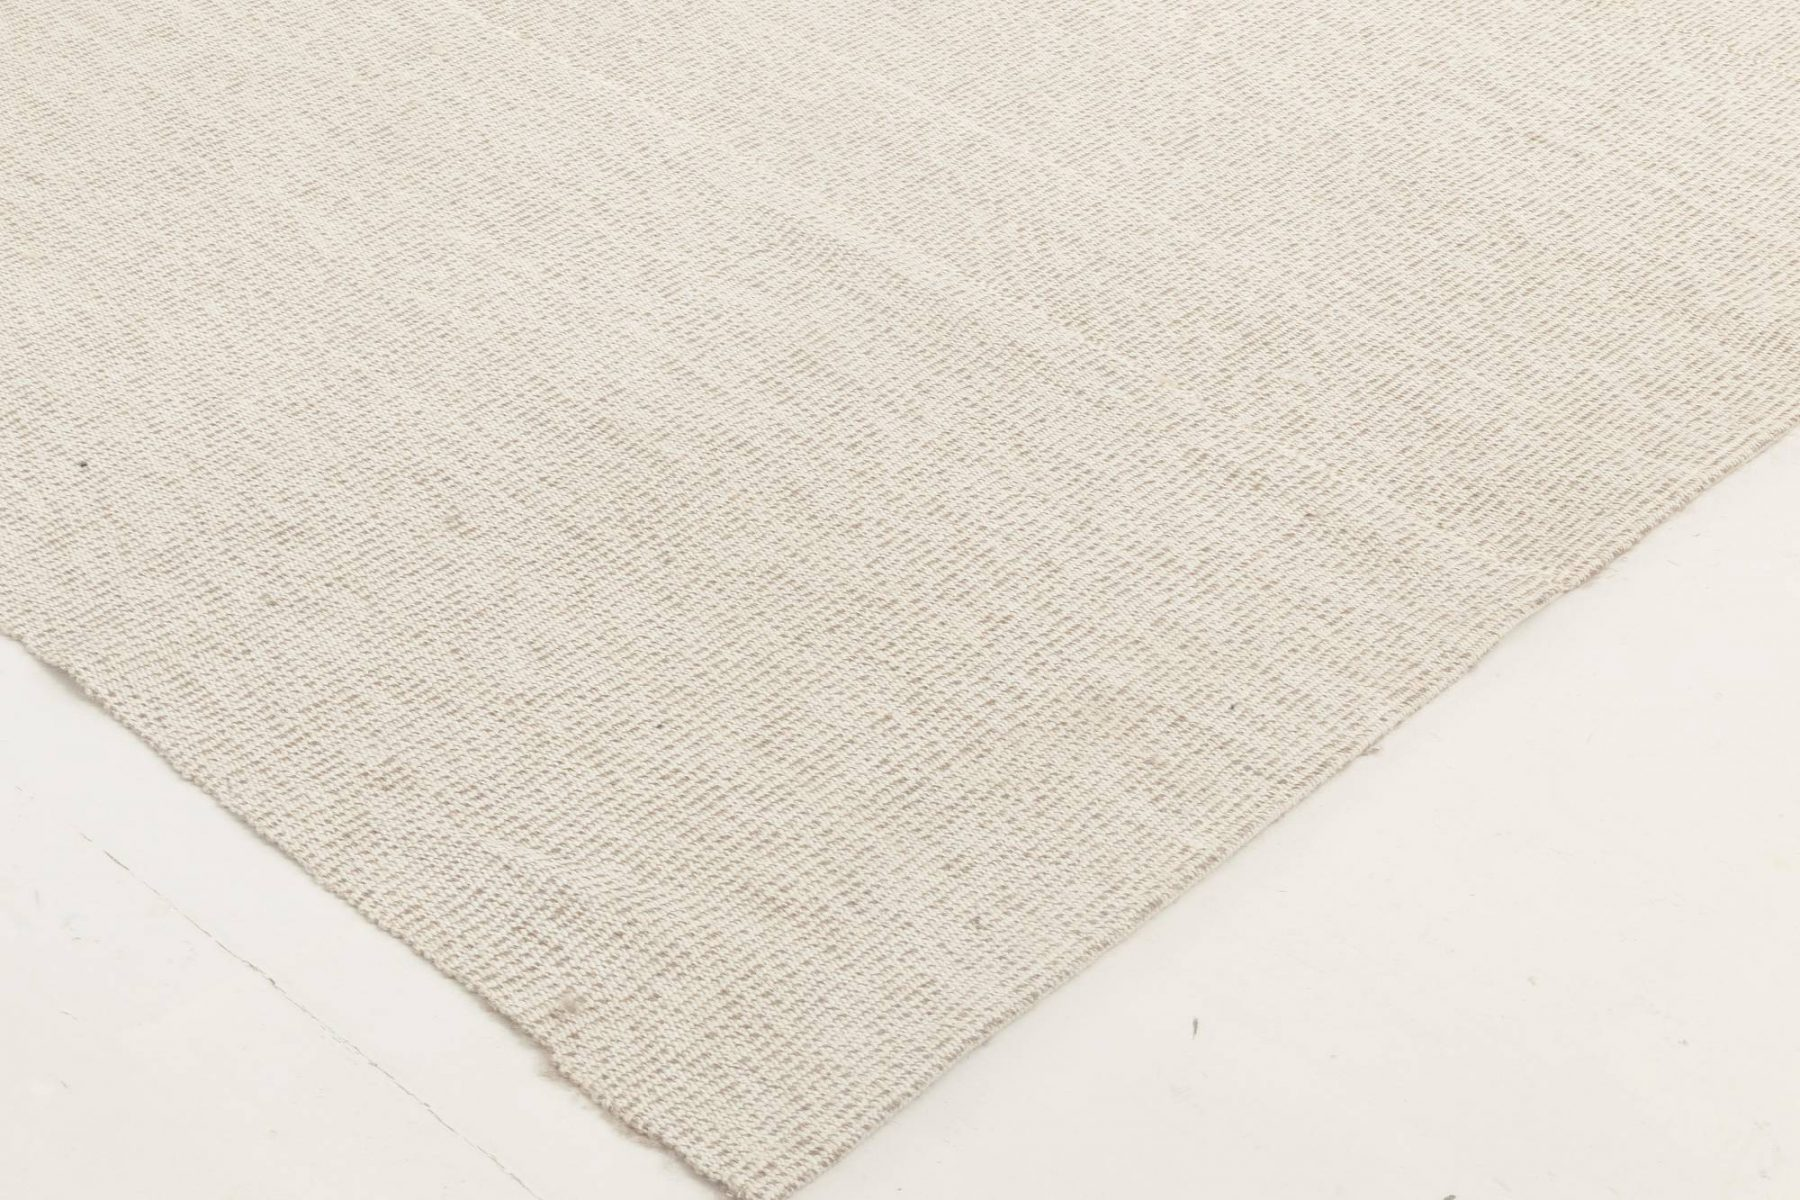 Contemporary Sandy Beige Flat-Woven Wool Kilim Rug N11812